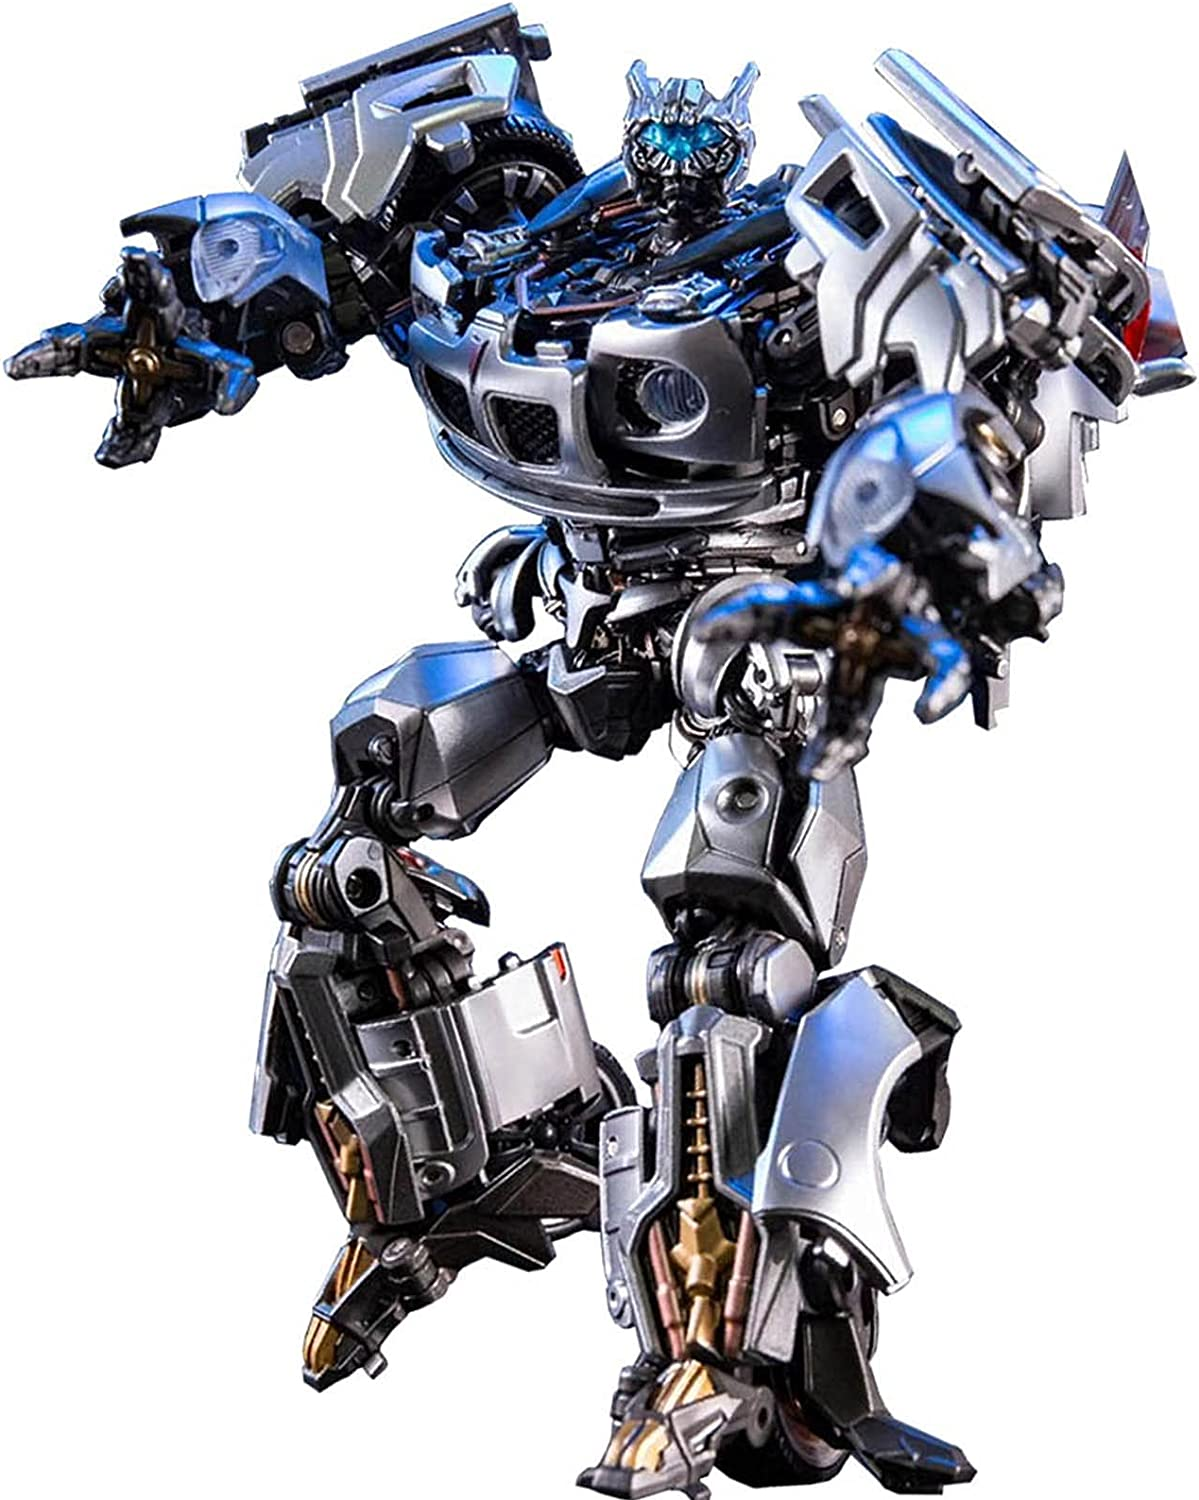 Transformer Special price Free shipping anywhere in the nation Toys Masterpiece Movie Series Action Mpm-9 Jazz Figu